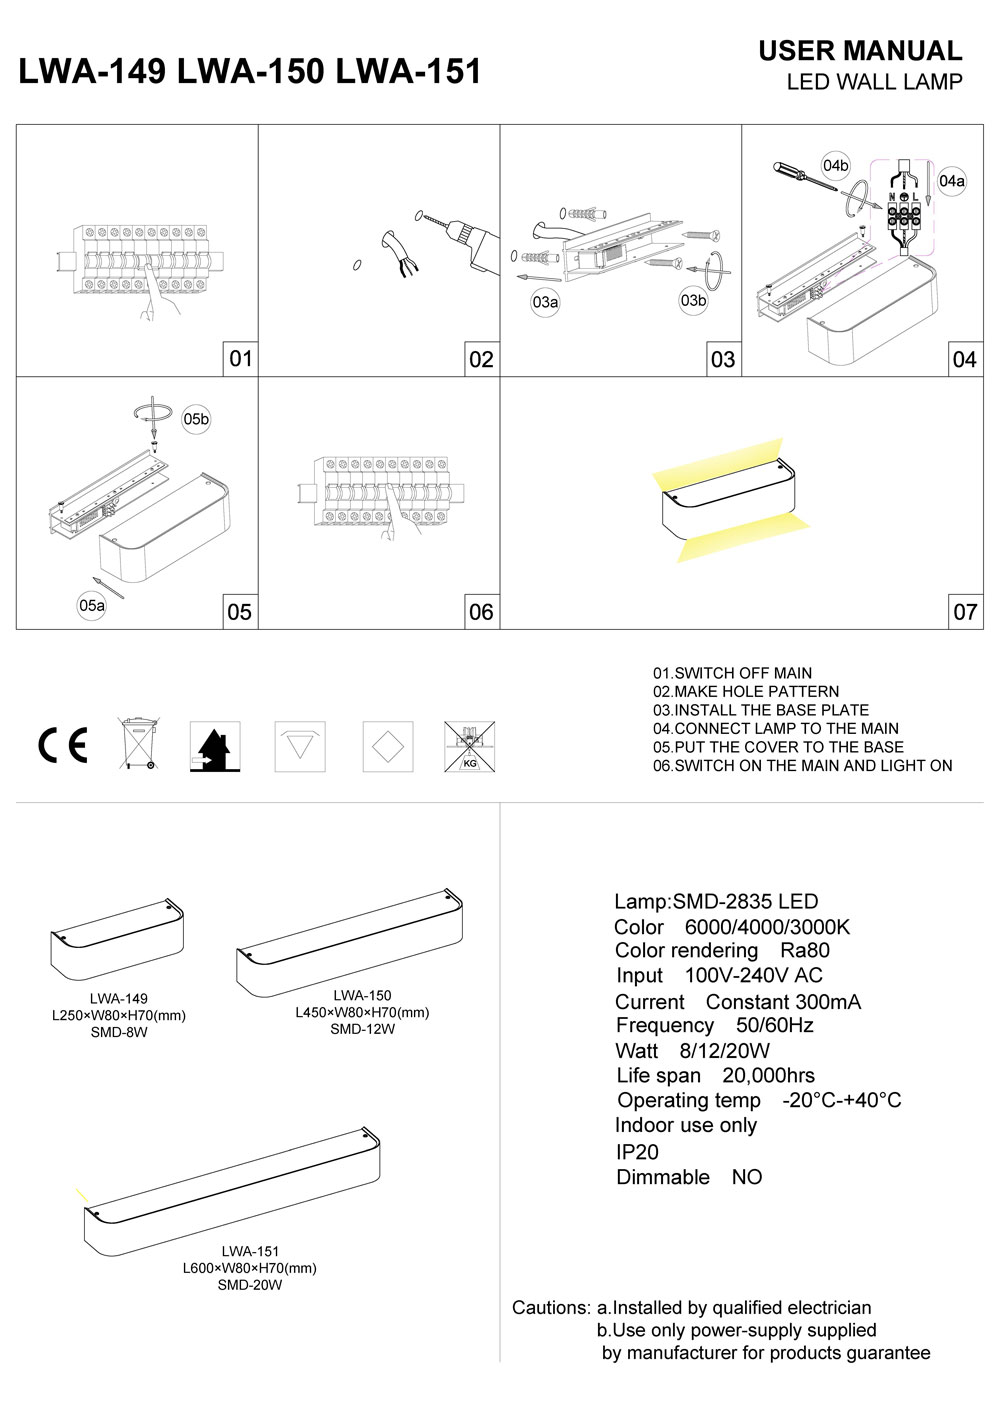 wall washer LED wall light installation guide